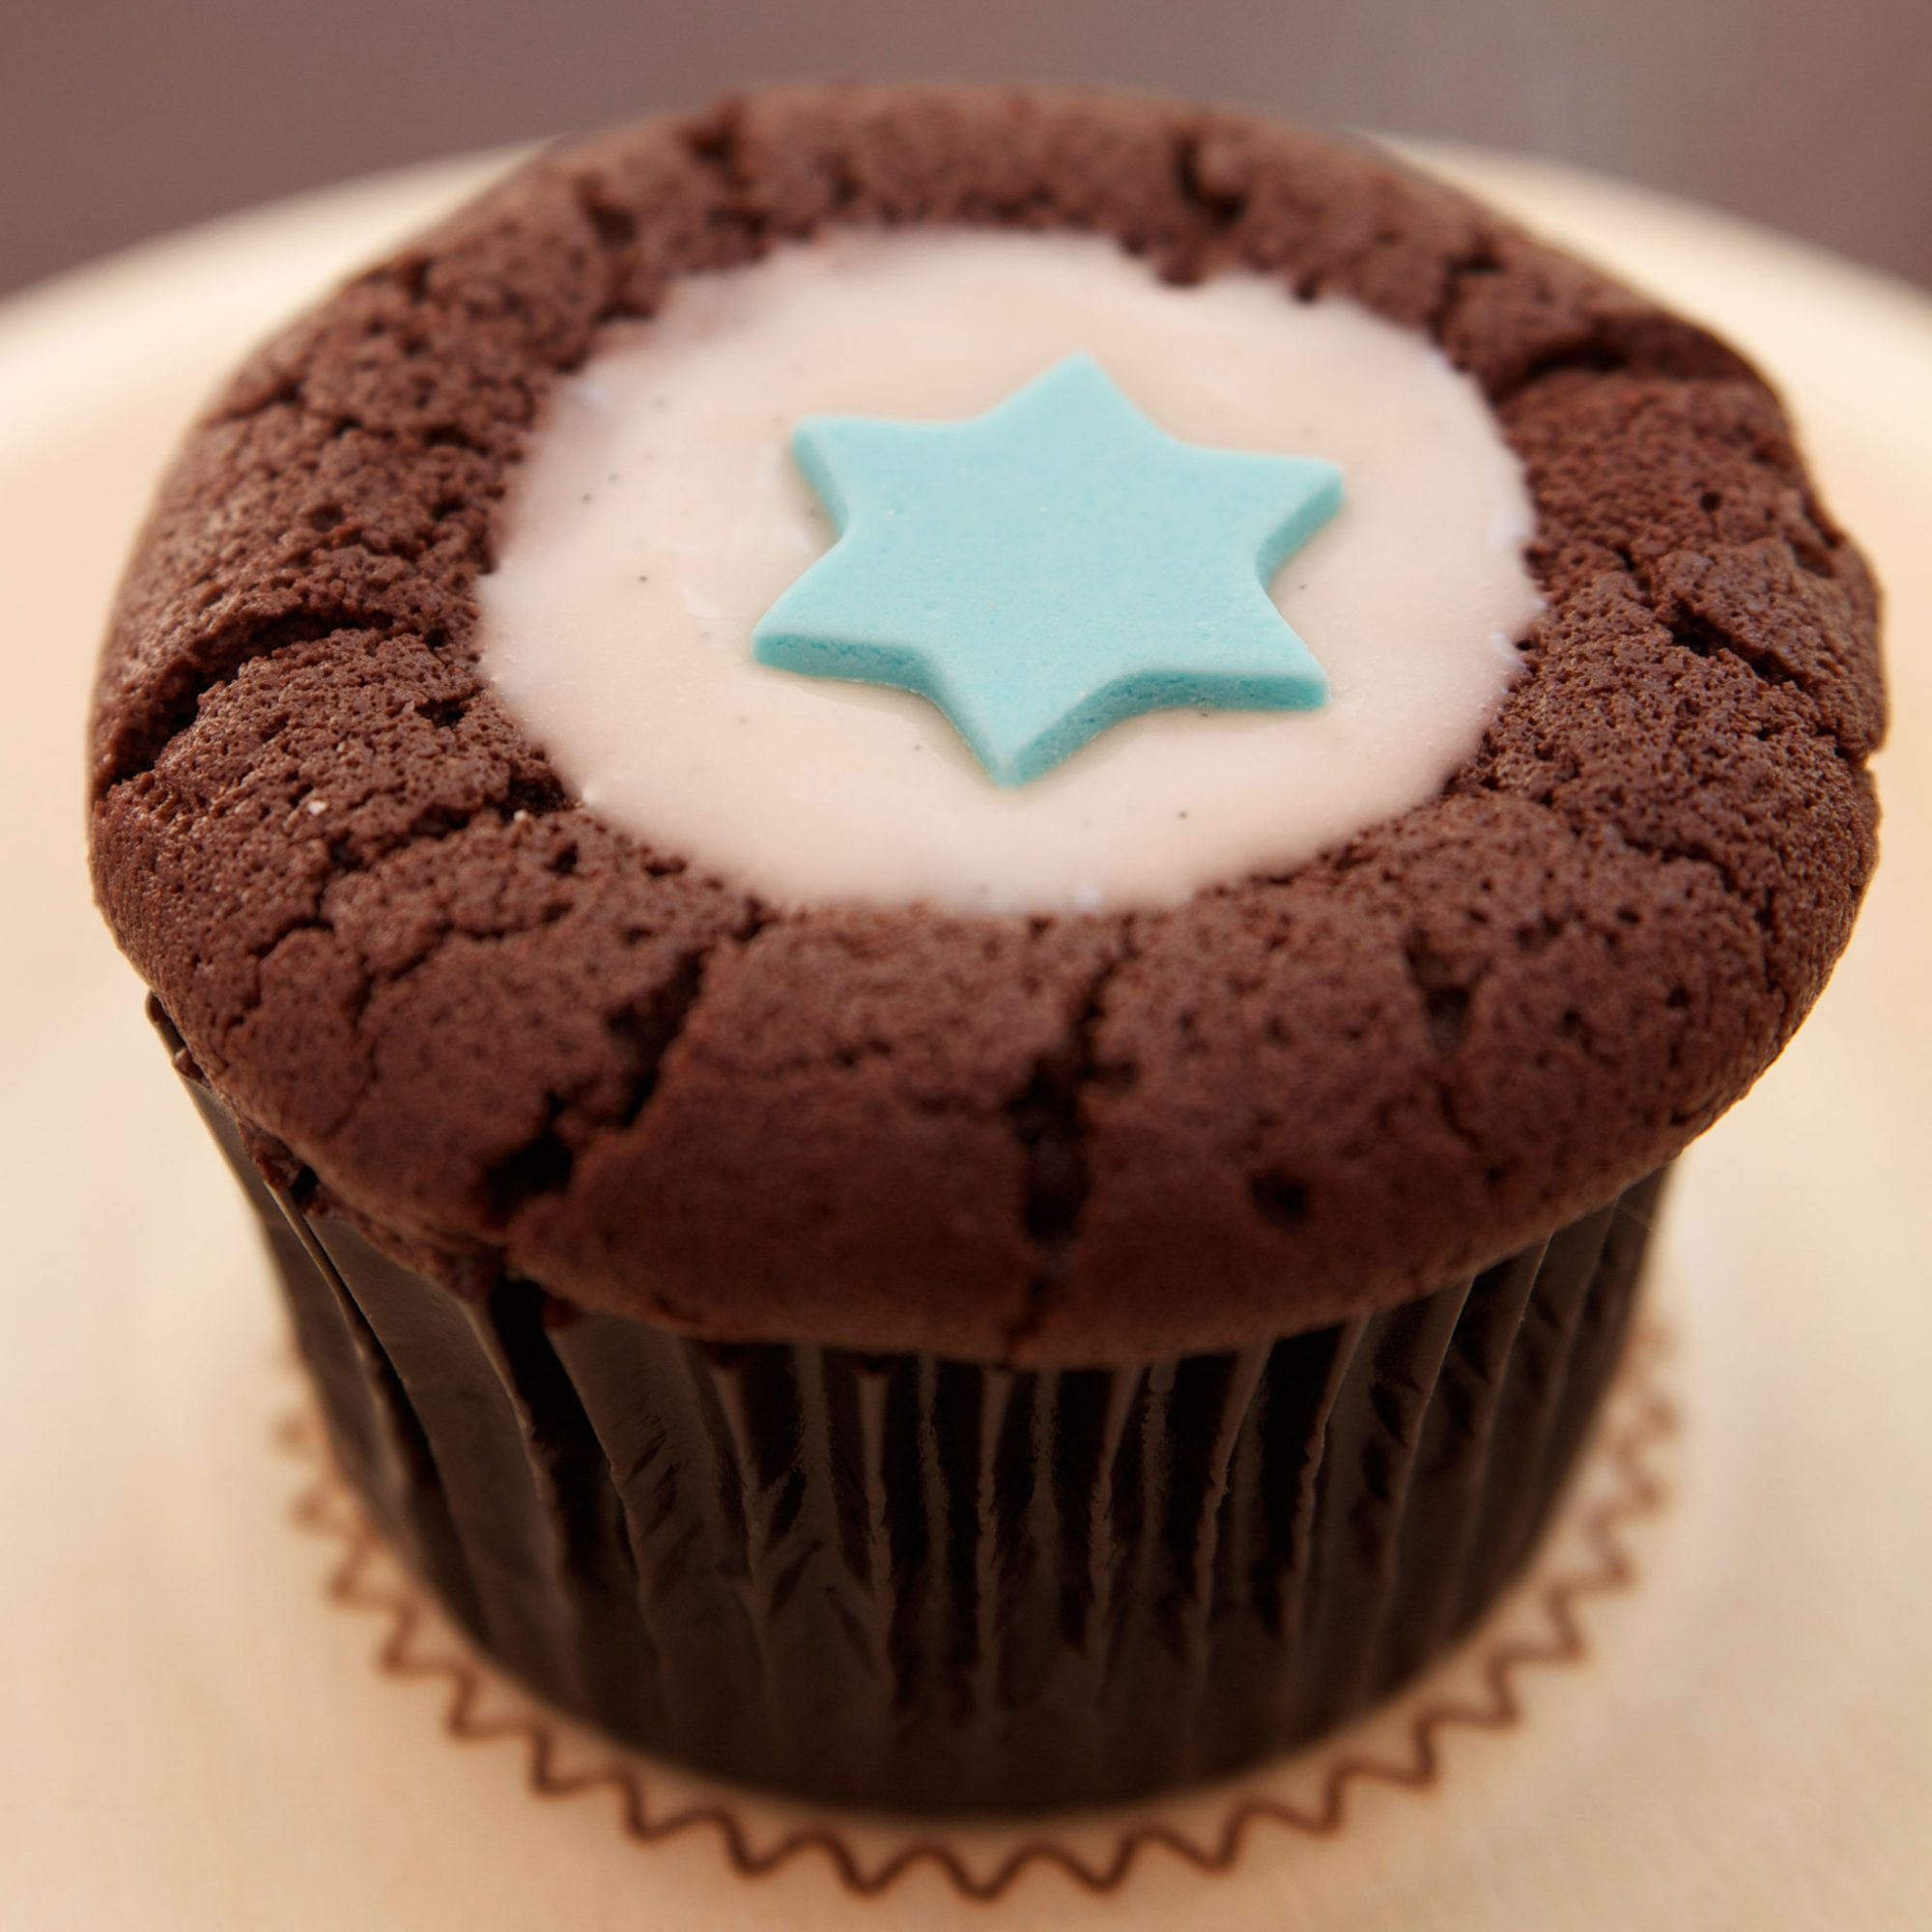 FWX WAYS TO TREAT YOURSELF ON PASSOVER SPRINKLES